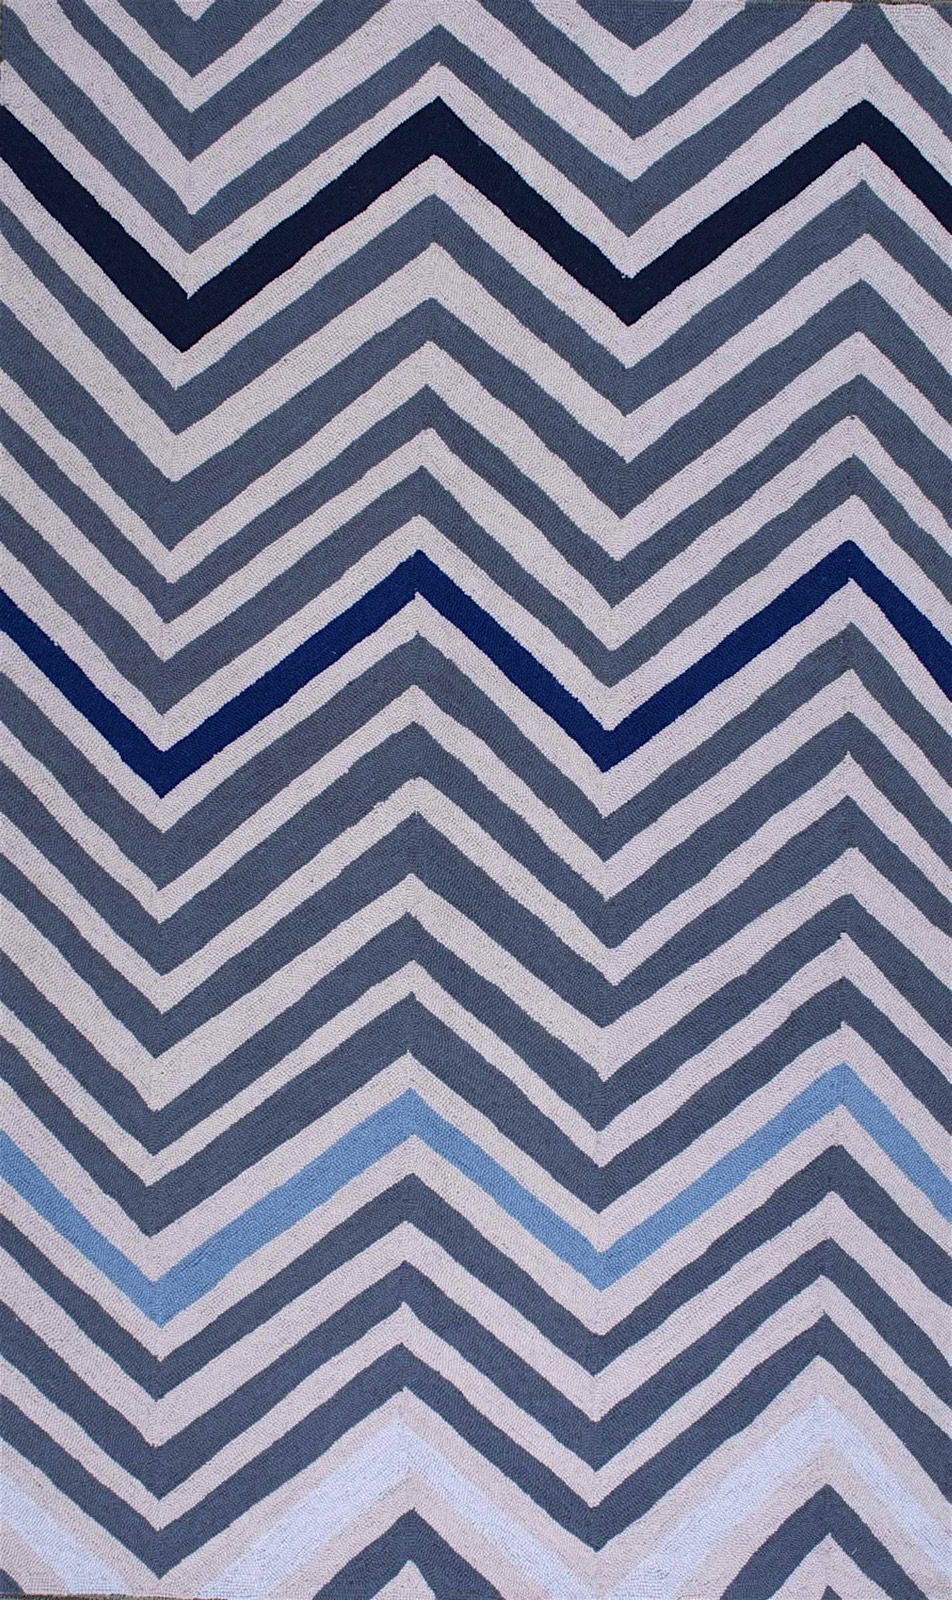 nuloom jaques indoor/outdoor area rug collection